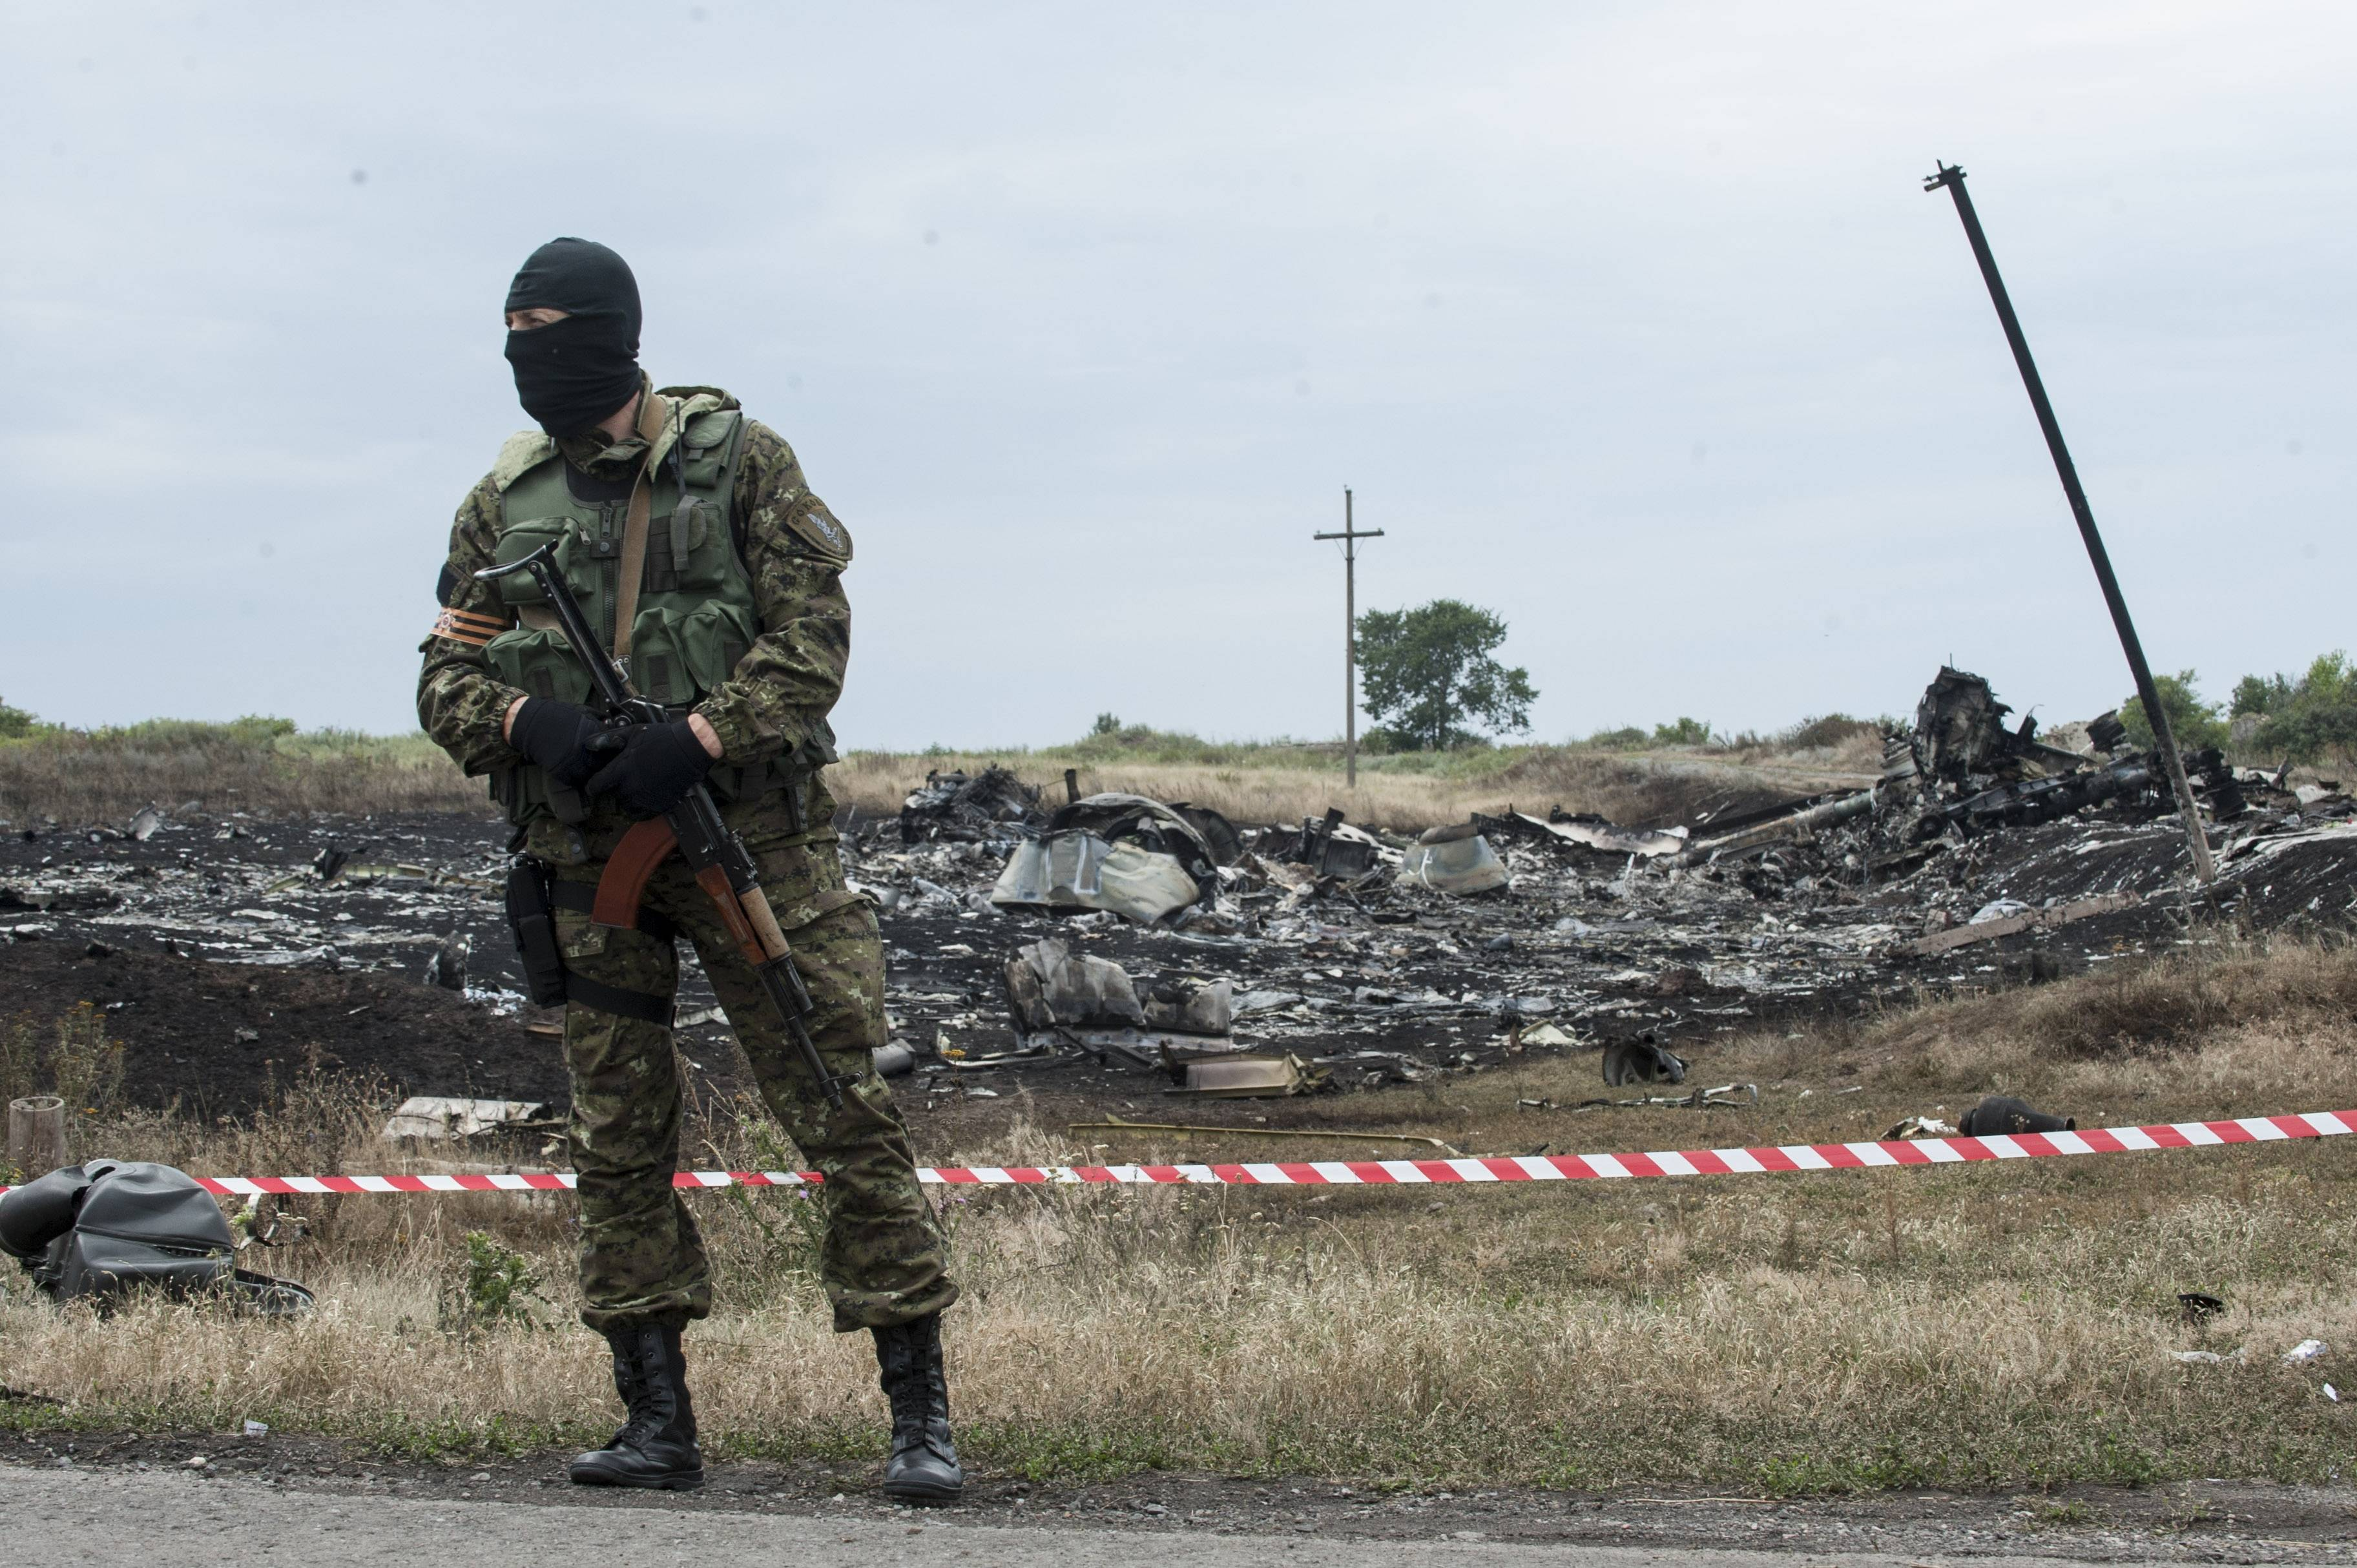 This July 19 file photo shows pro-Russian fighter guarding the crash site of Malaysia Airlines Flight 17 near the village of Hrabove, eastern Ukraine. Ukraine said the passenger plane was shot down as it flew over the country, killing all 298 people on board. A series of unanswered questions about the downing of the flight shows the limits of U.S. intelligence-gathering even when it is intensely focused, as it has been in Ukraine since Russia seized Crimea in March.